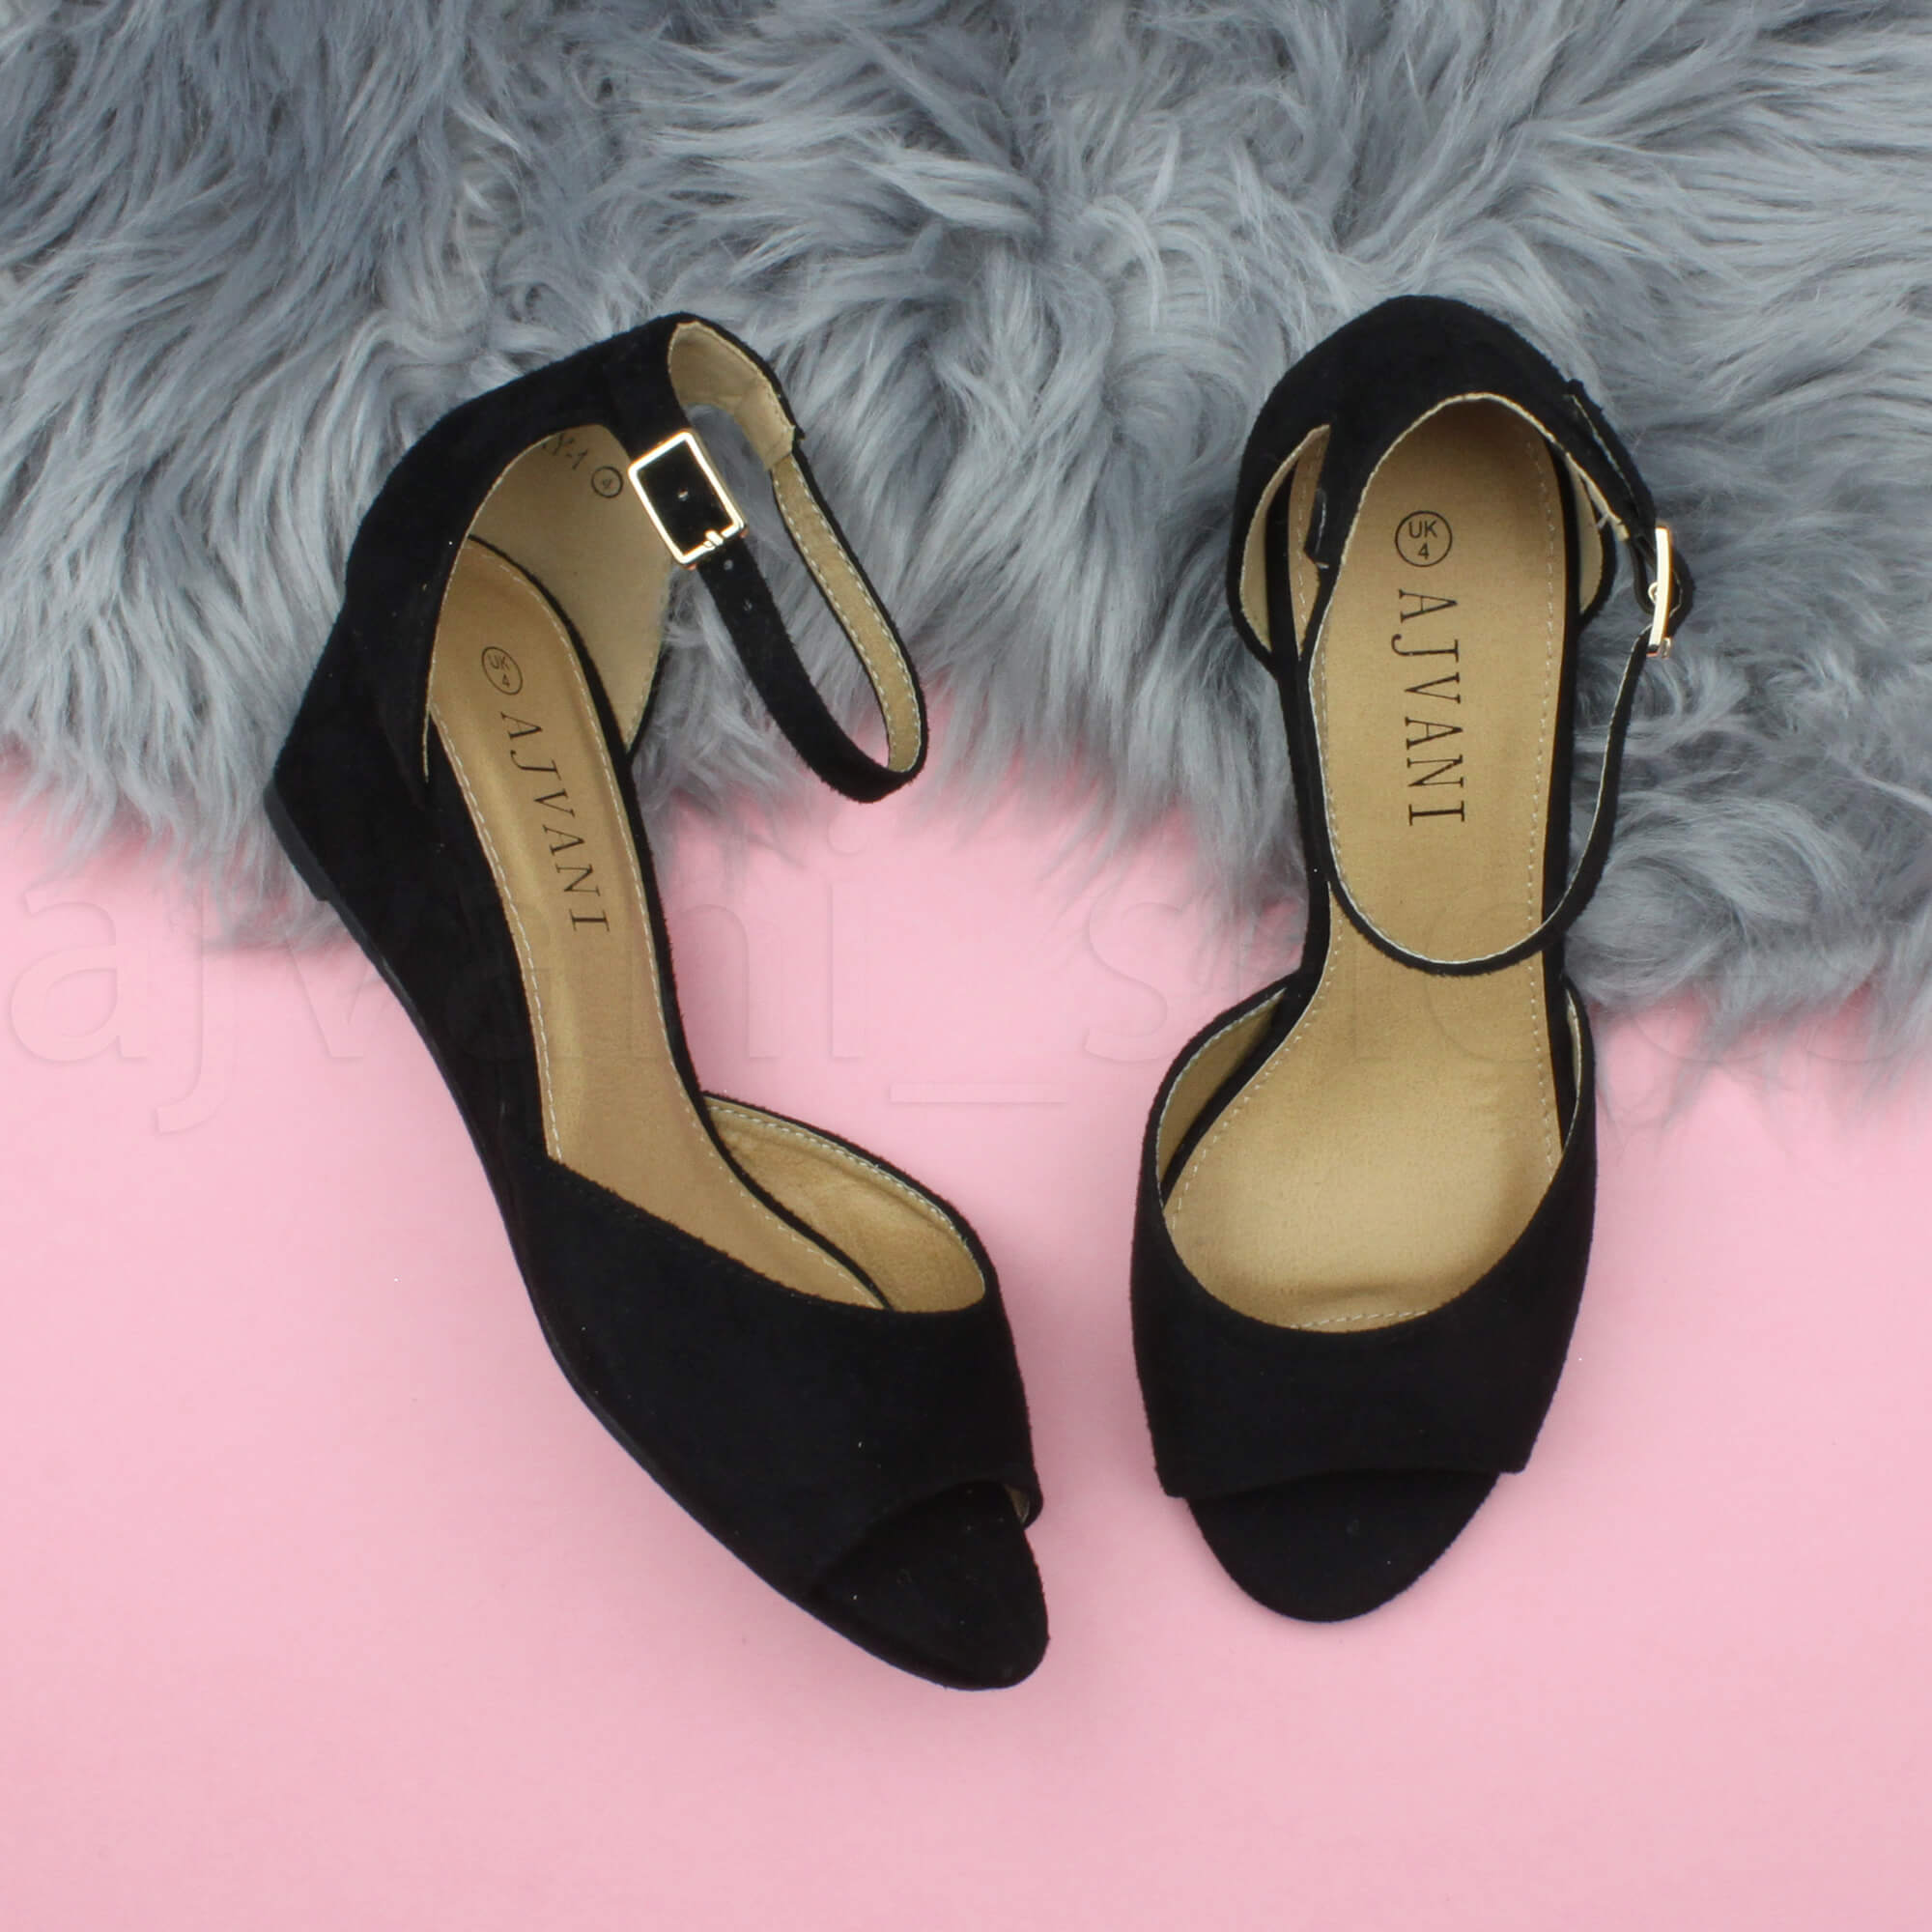 WOMENS-LADIES-LOW-MID-WEDGE-HEEL-ANKLE-STRAP-SMART-CASUAL-EVENING-SANDALS-SIZE thumbnail 21